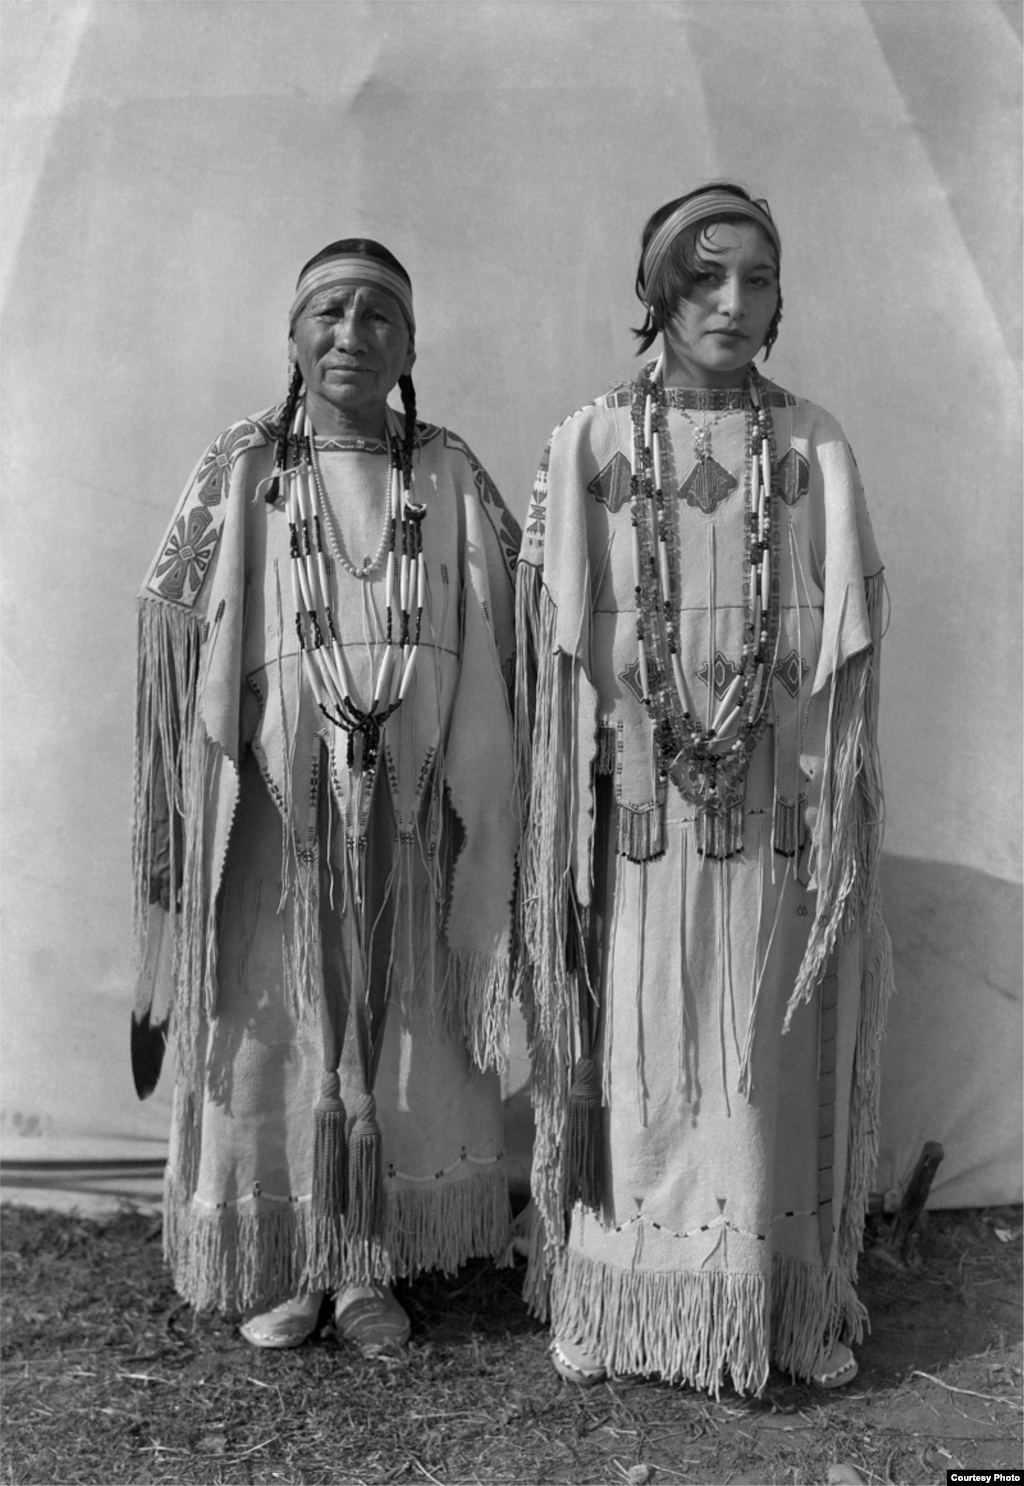 Left to right: Sindy Libby Keahbone (Kiowa) and Hannah Keahbone (Kiowa). Oklahoma City, Oklahoma, ca. 1930. 57PC2. © 2014 Estate of Horace Poolaw. Reprinted with permission.